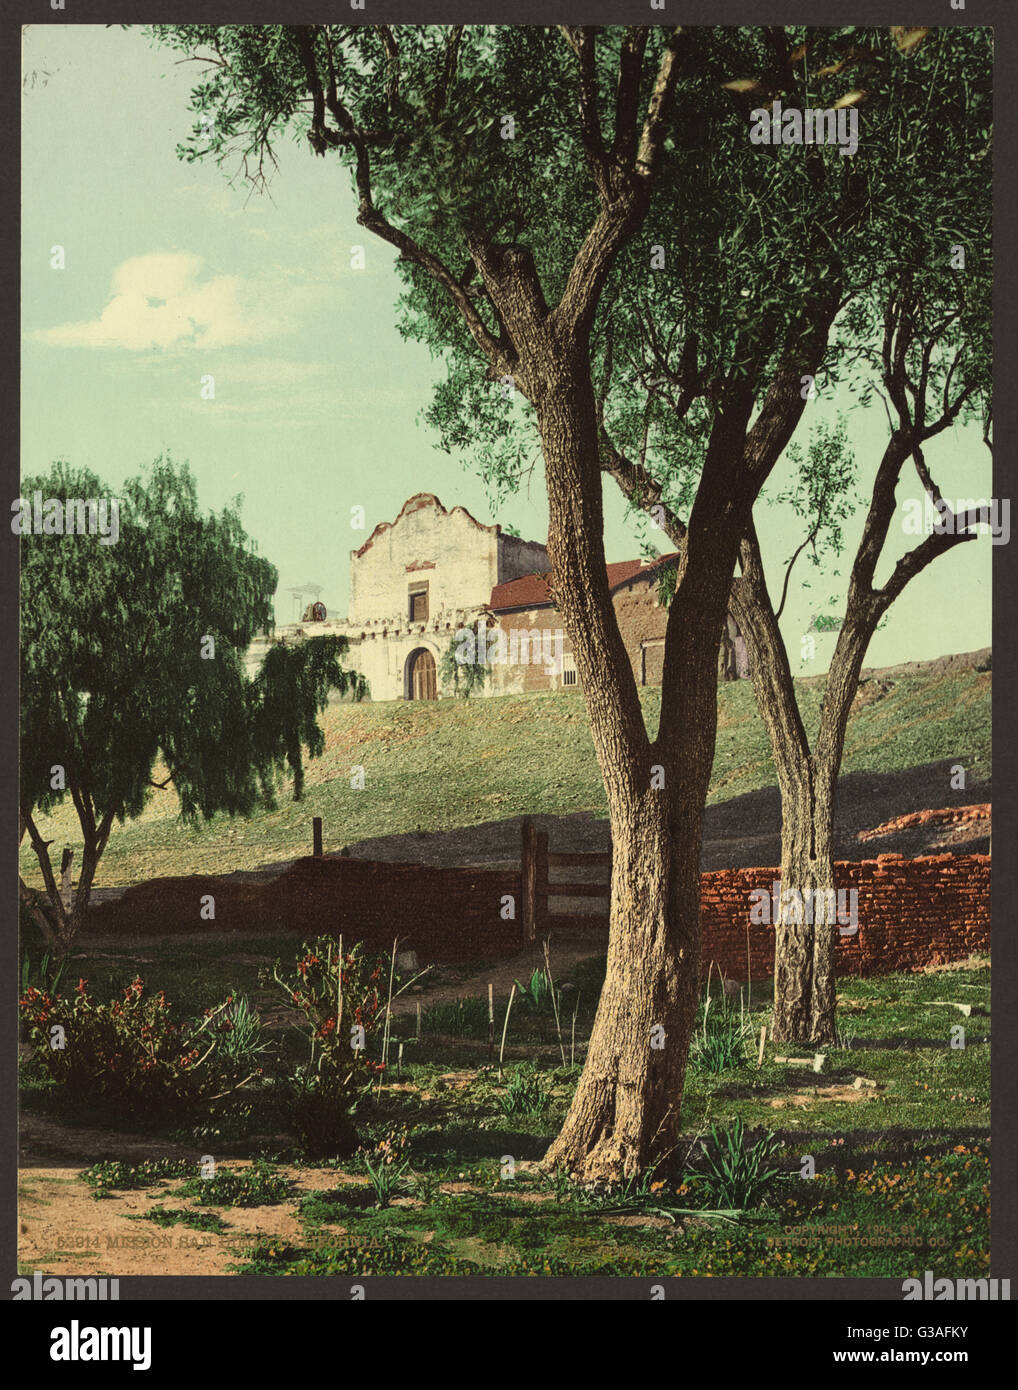 Mission San Diego, California. Date c1904. - Stock Image